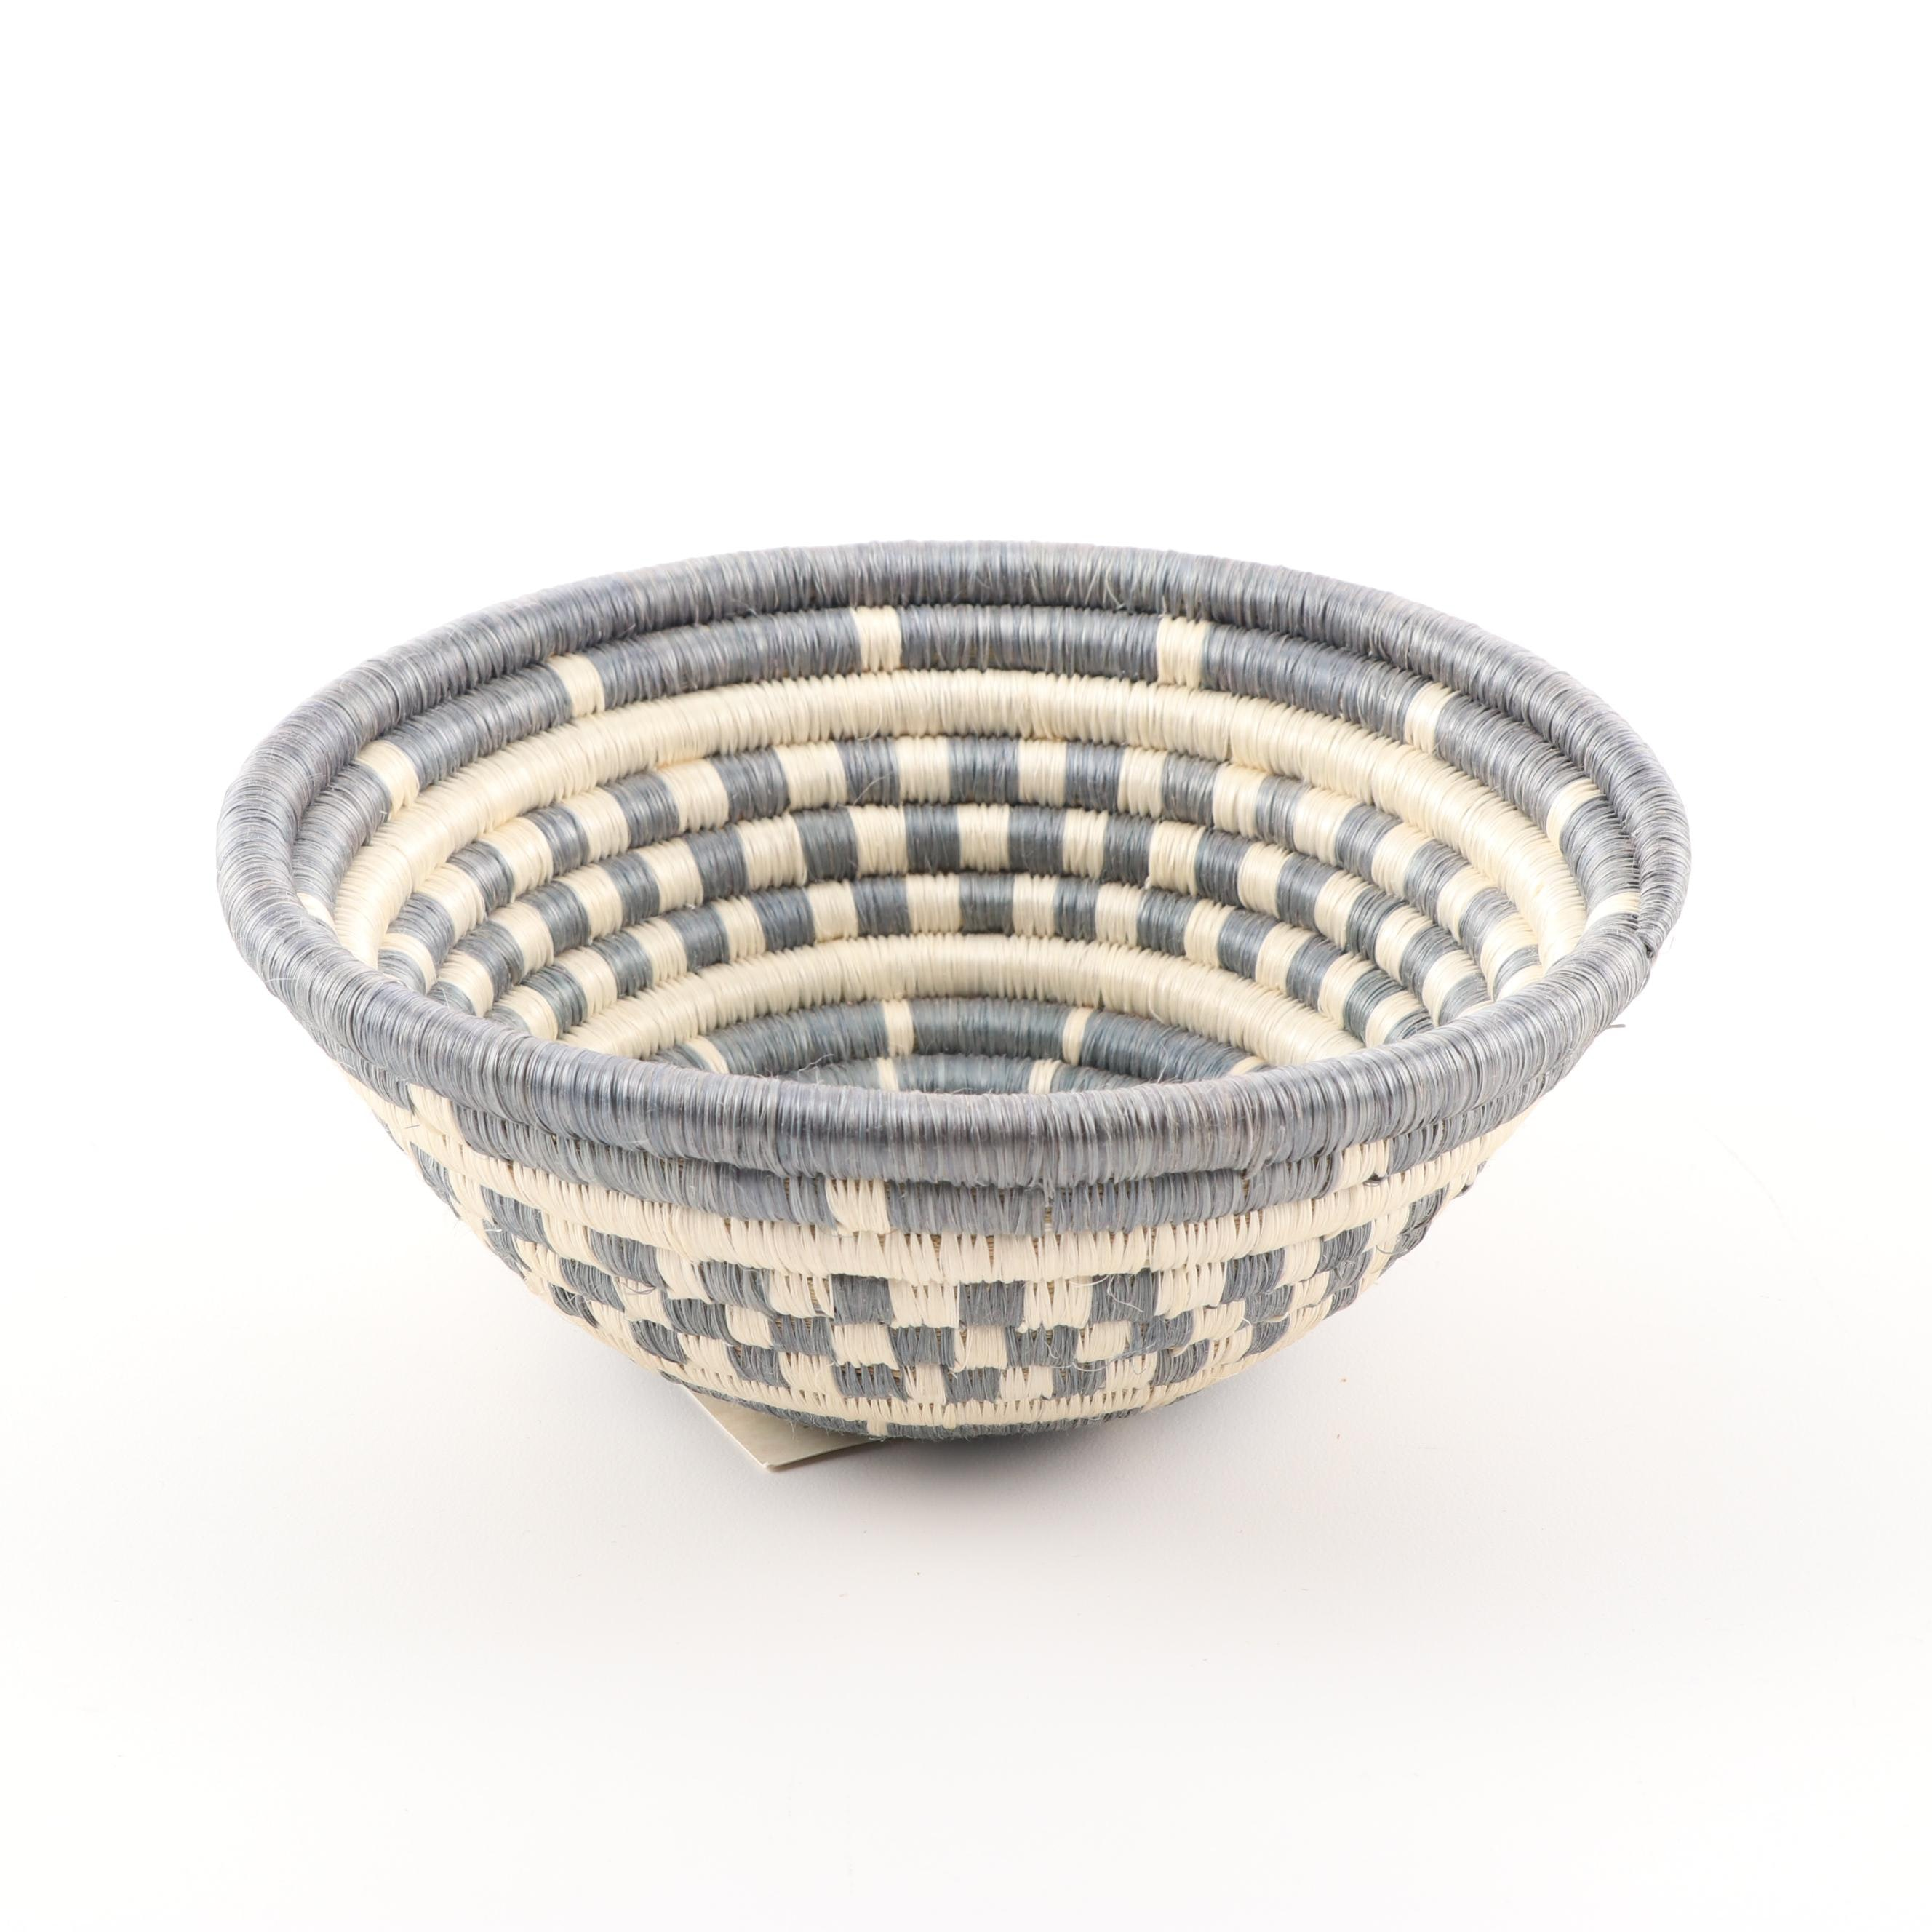 All Across Africa Handcrafted Basket